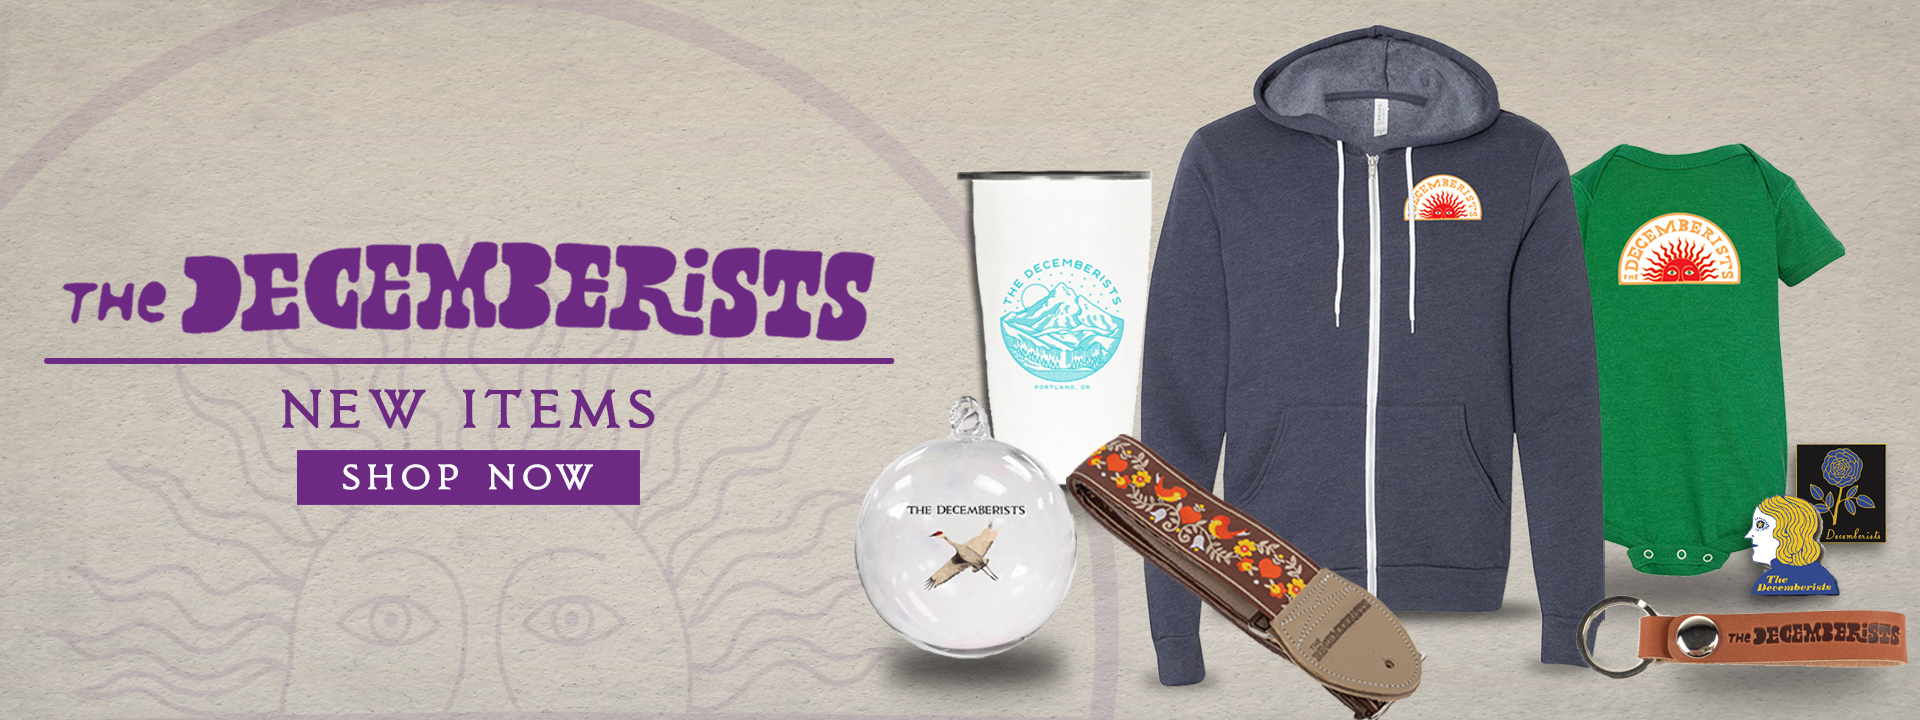 The Decemberists - 2019 Holiday Items - Shop Now